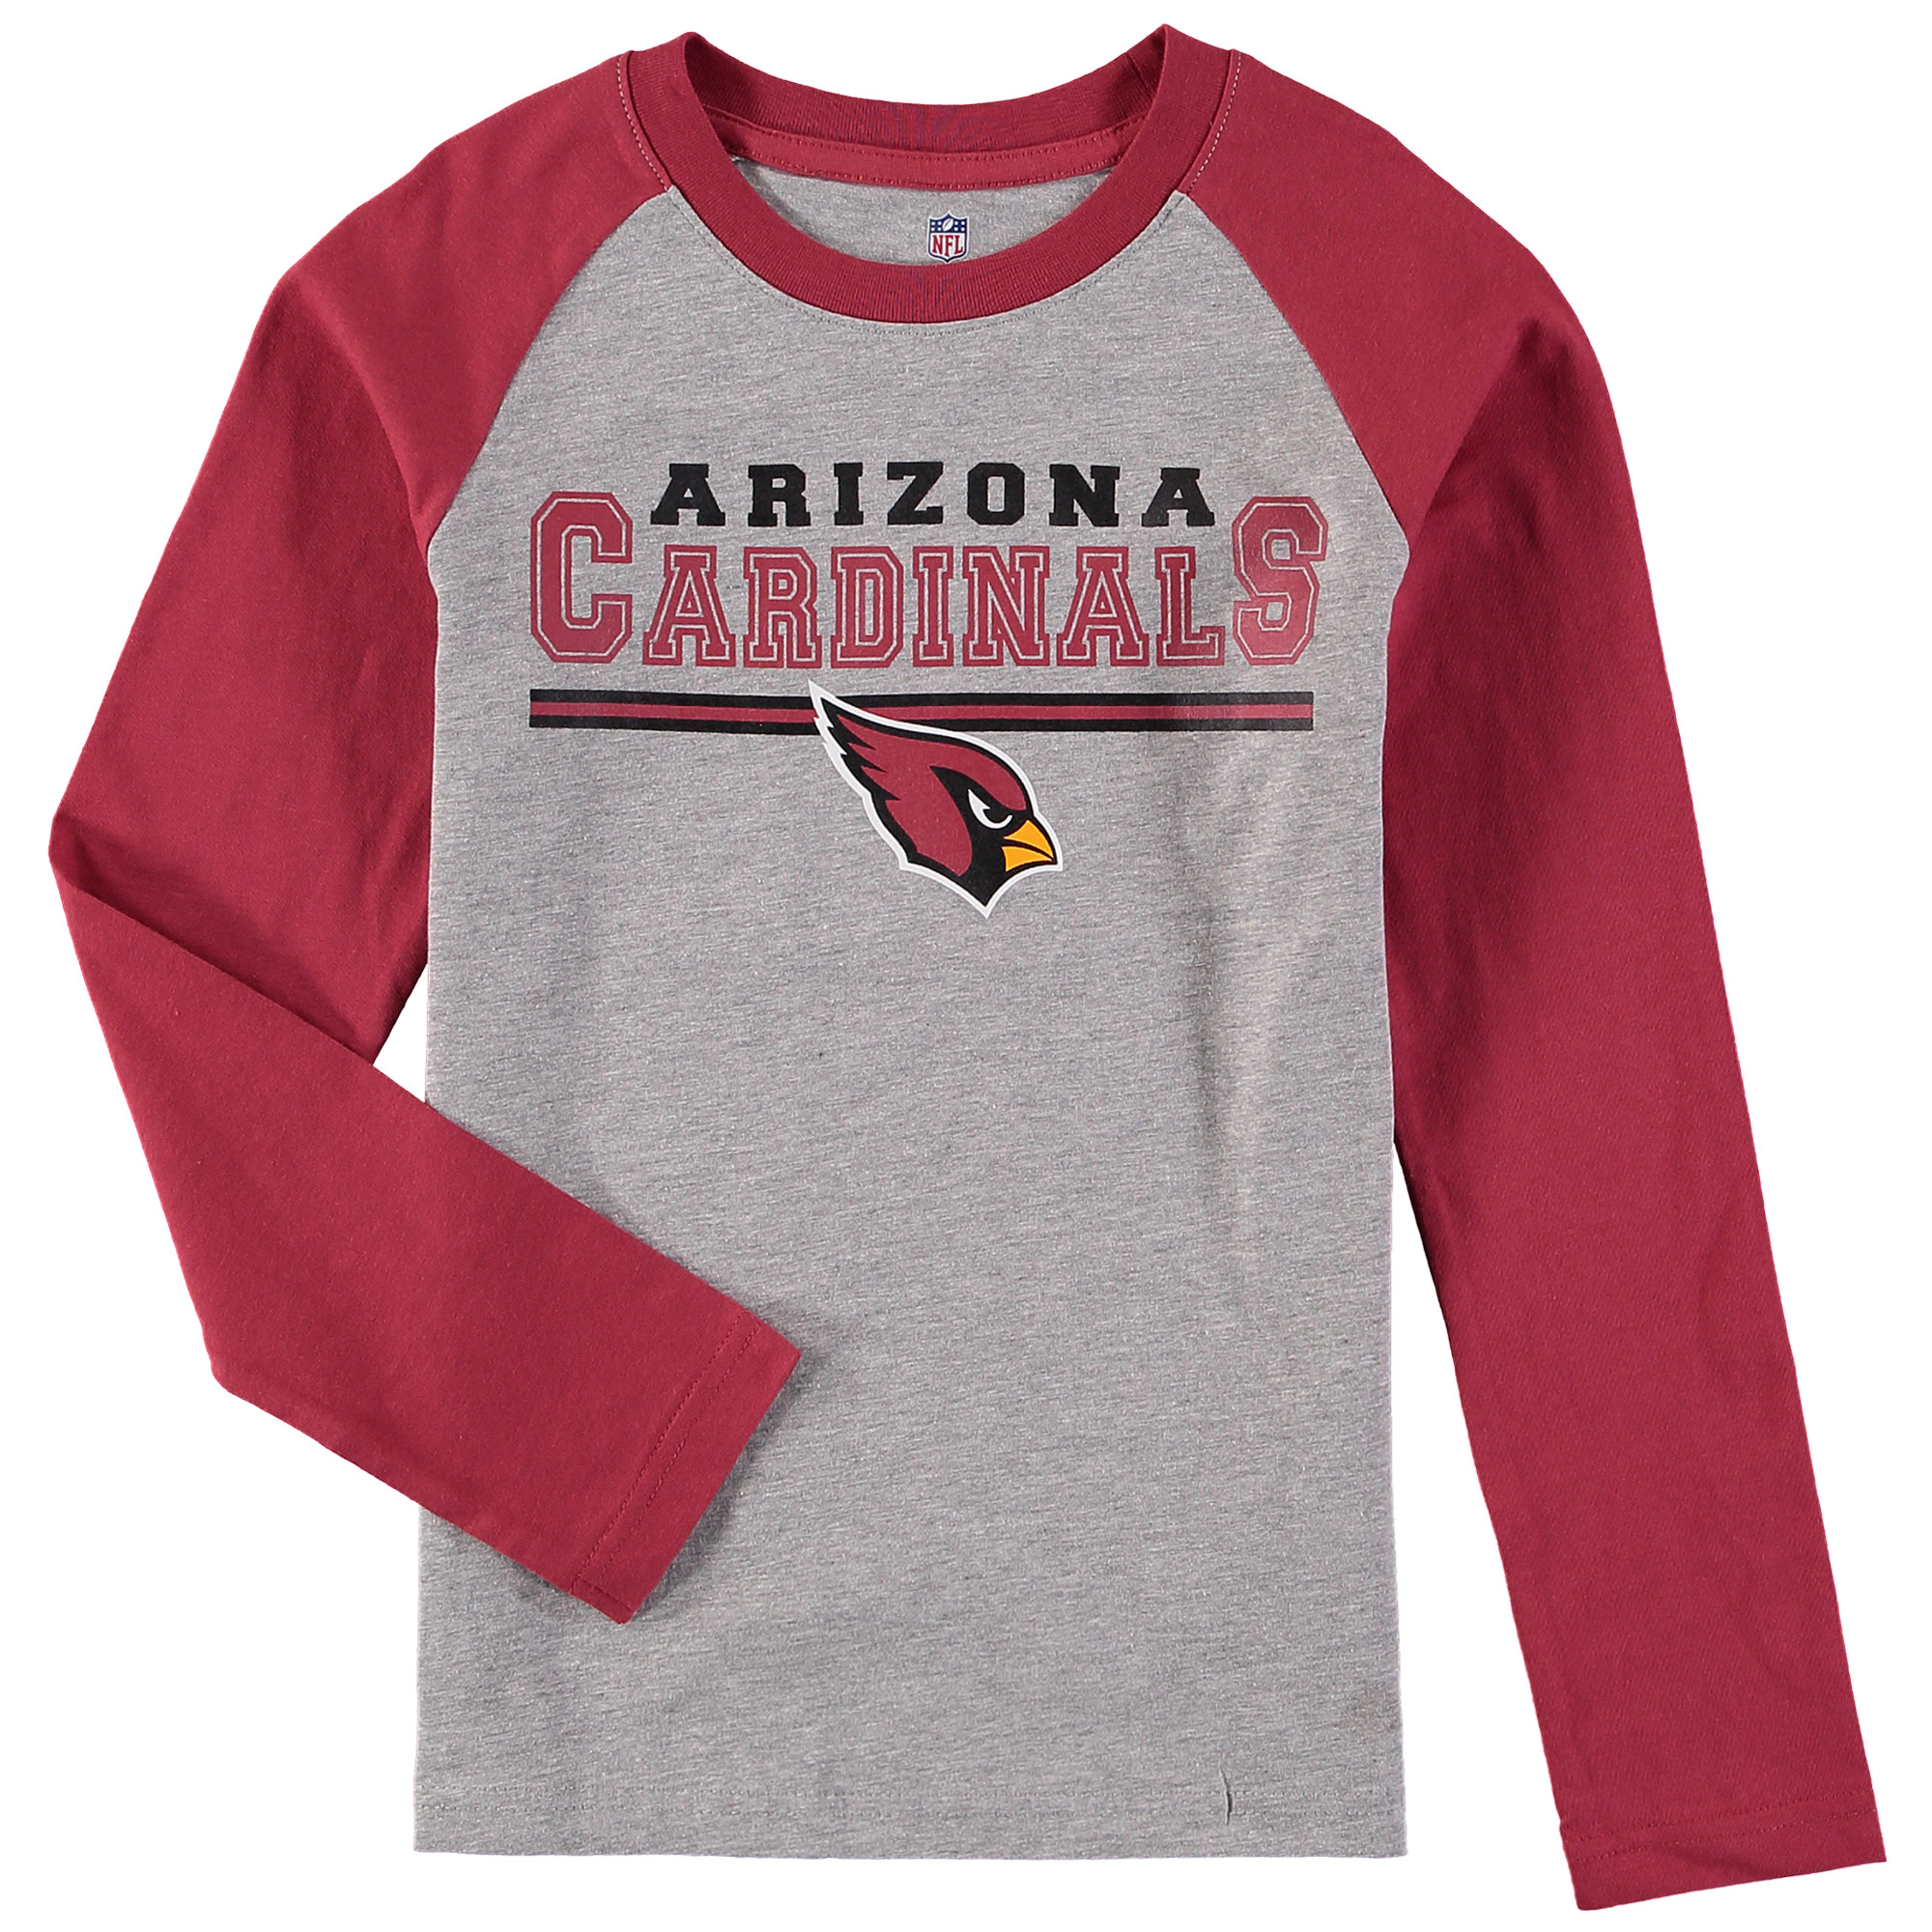 Arizona Cardinals Youth Fan Gear Field Line Long Sleeve Raglan T-Shirt - Heathered Gray/Cardinal